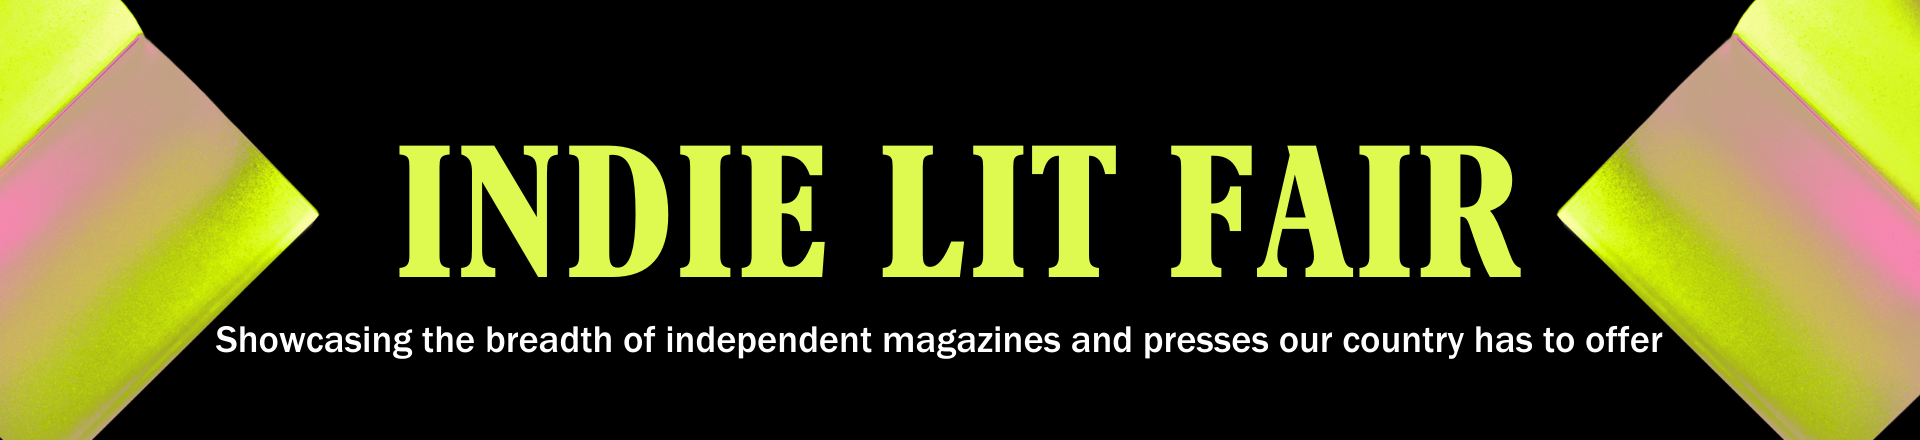 Indie Lit Fair: Showcasing the breadth of independent magazines and presses our country has to offer